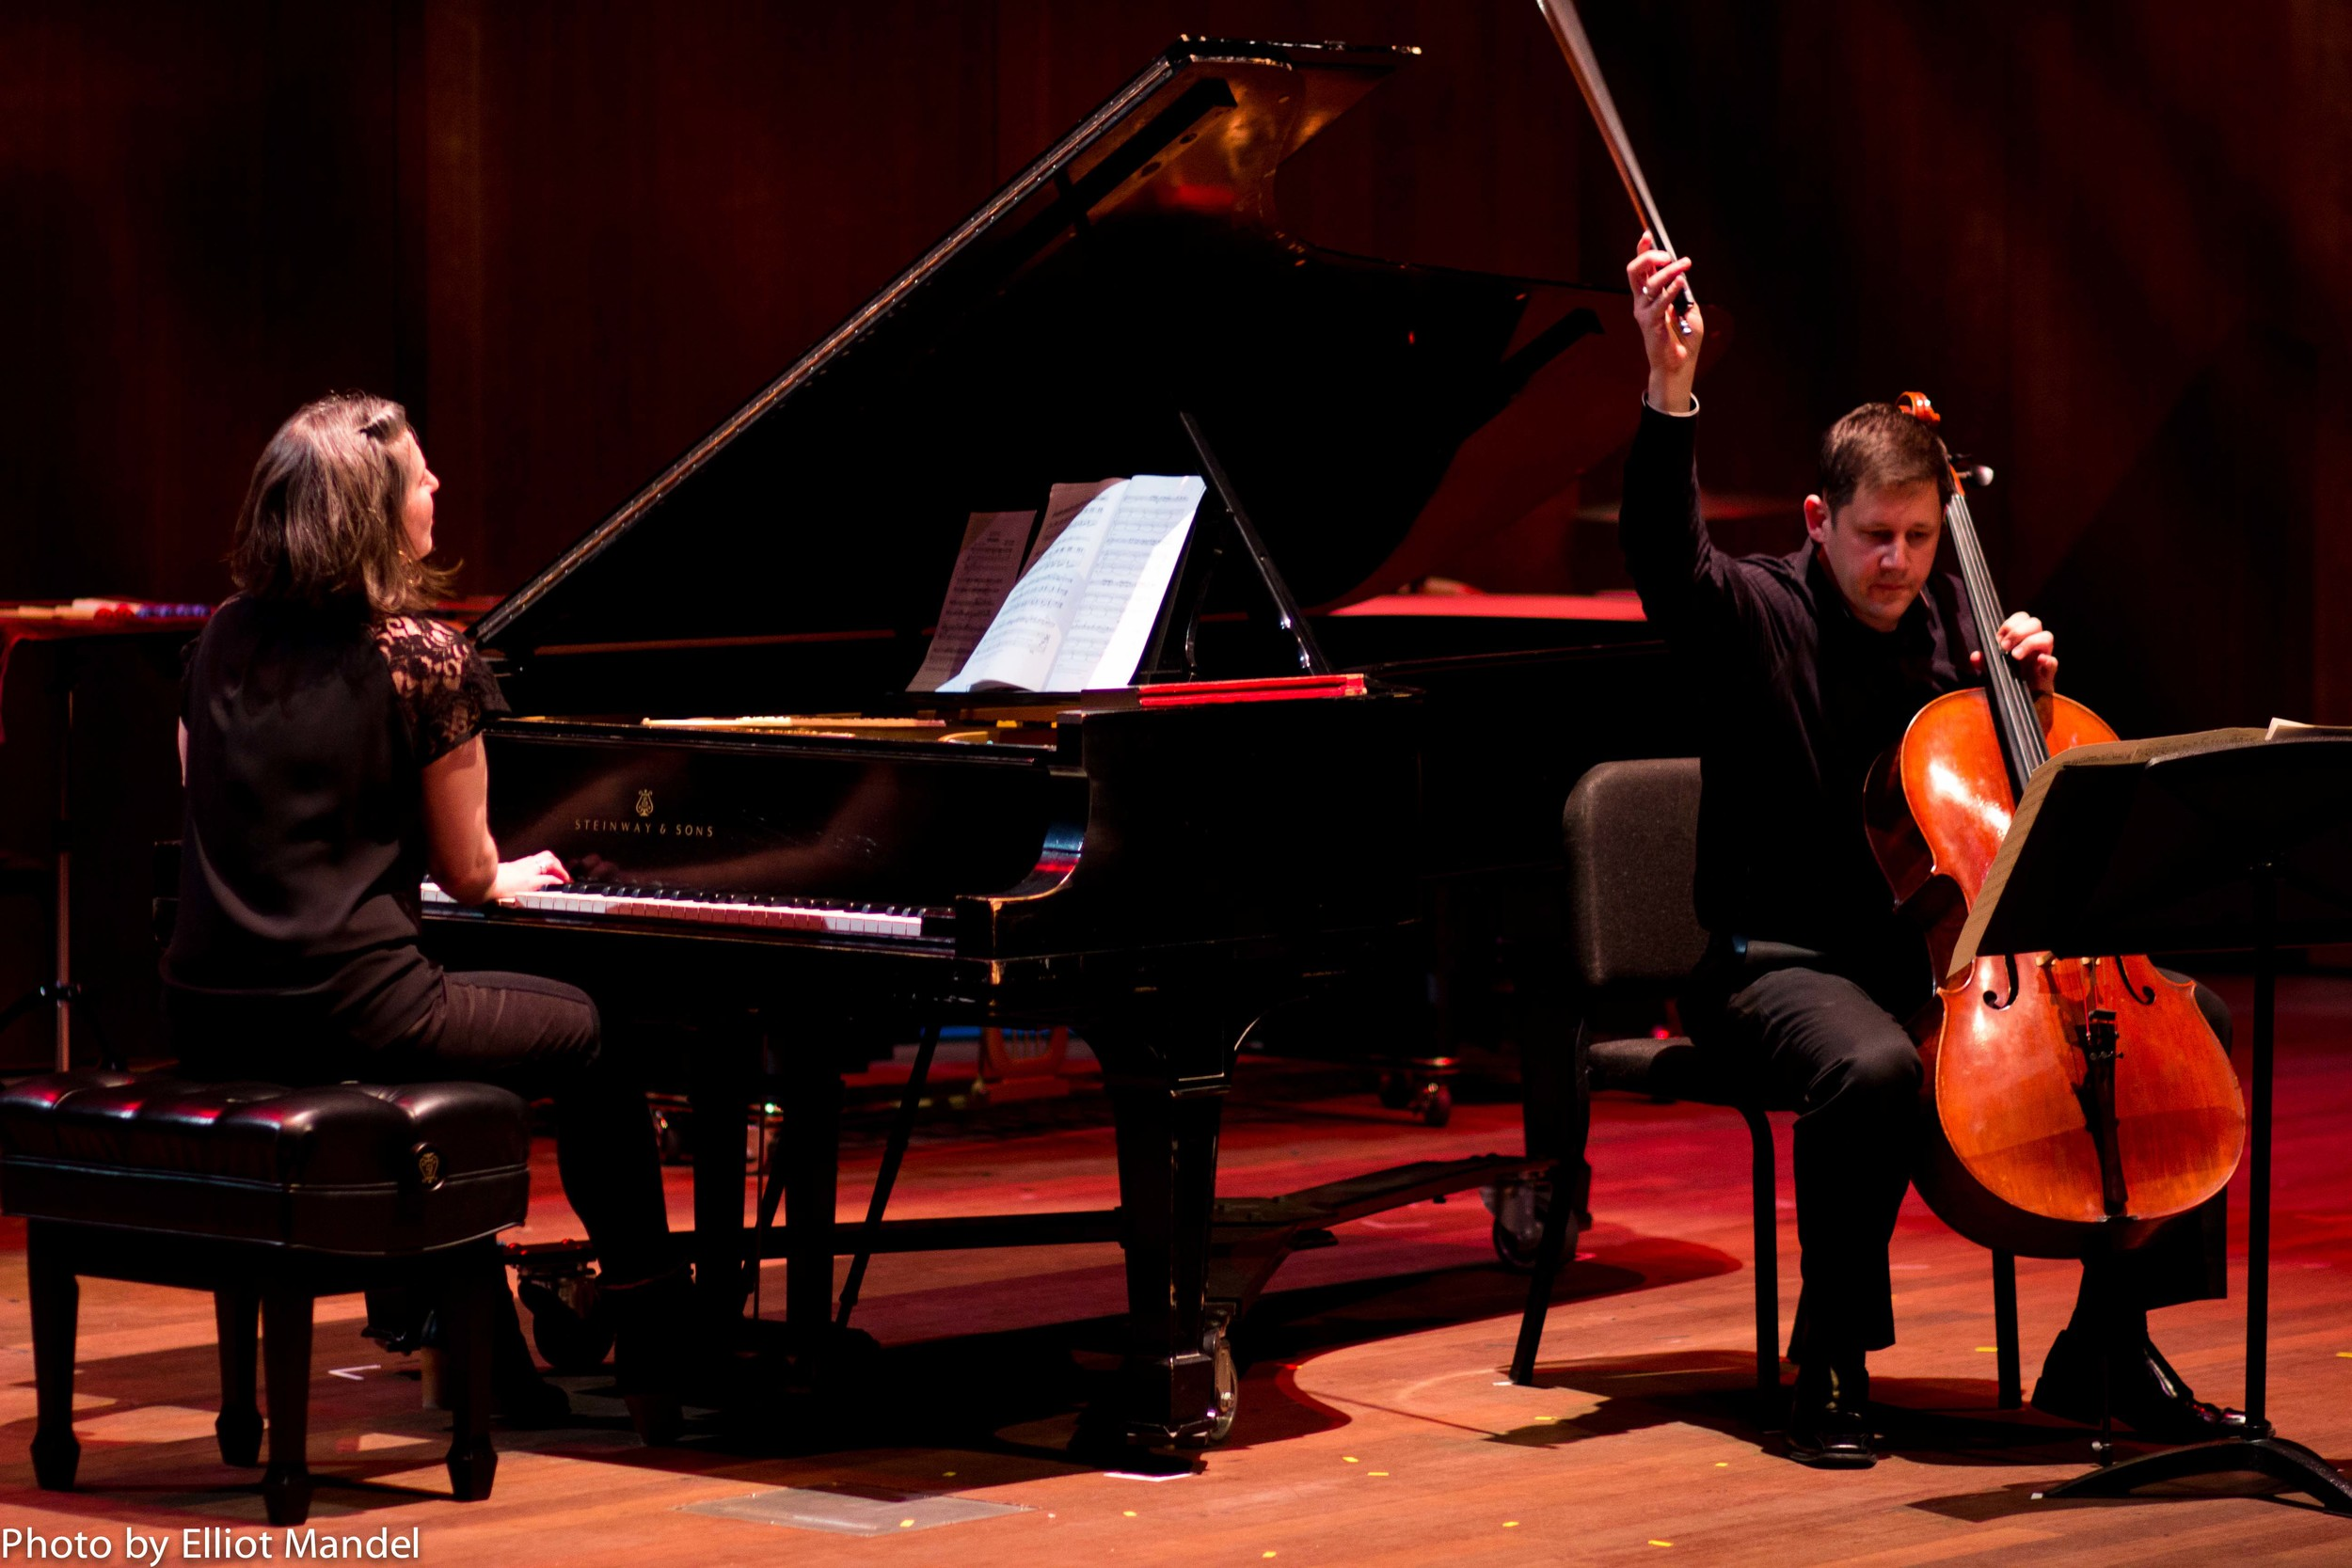 eighth blackbird's Lisa Kaplan (piano) and Nicholas Photinos (cello).